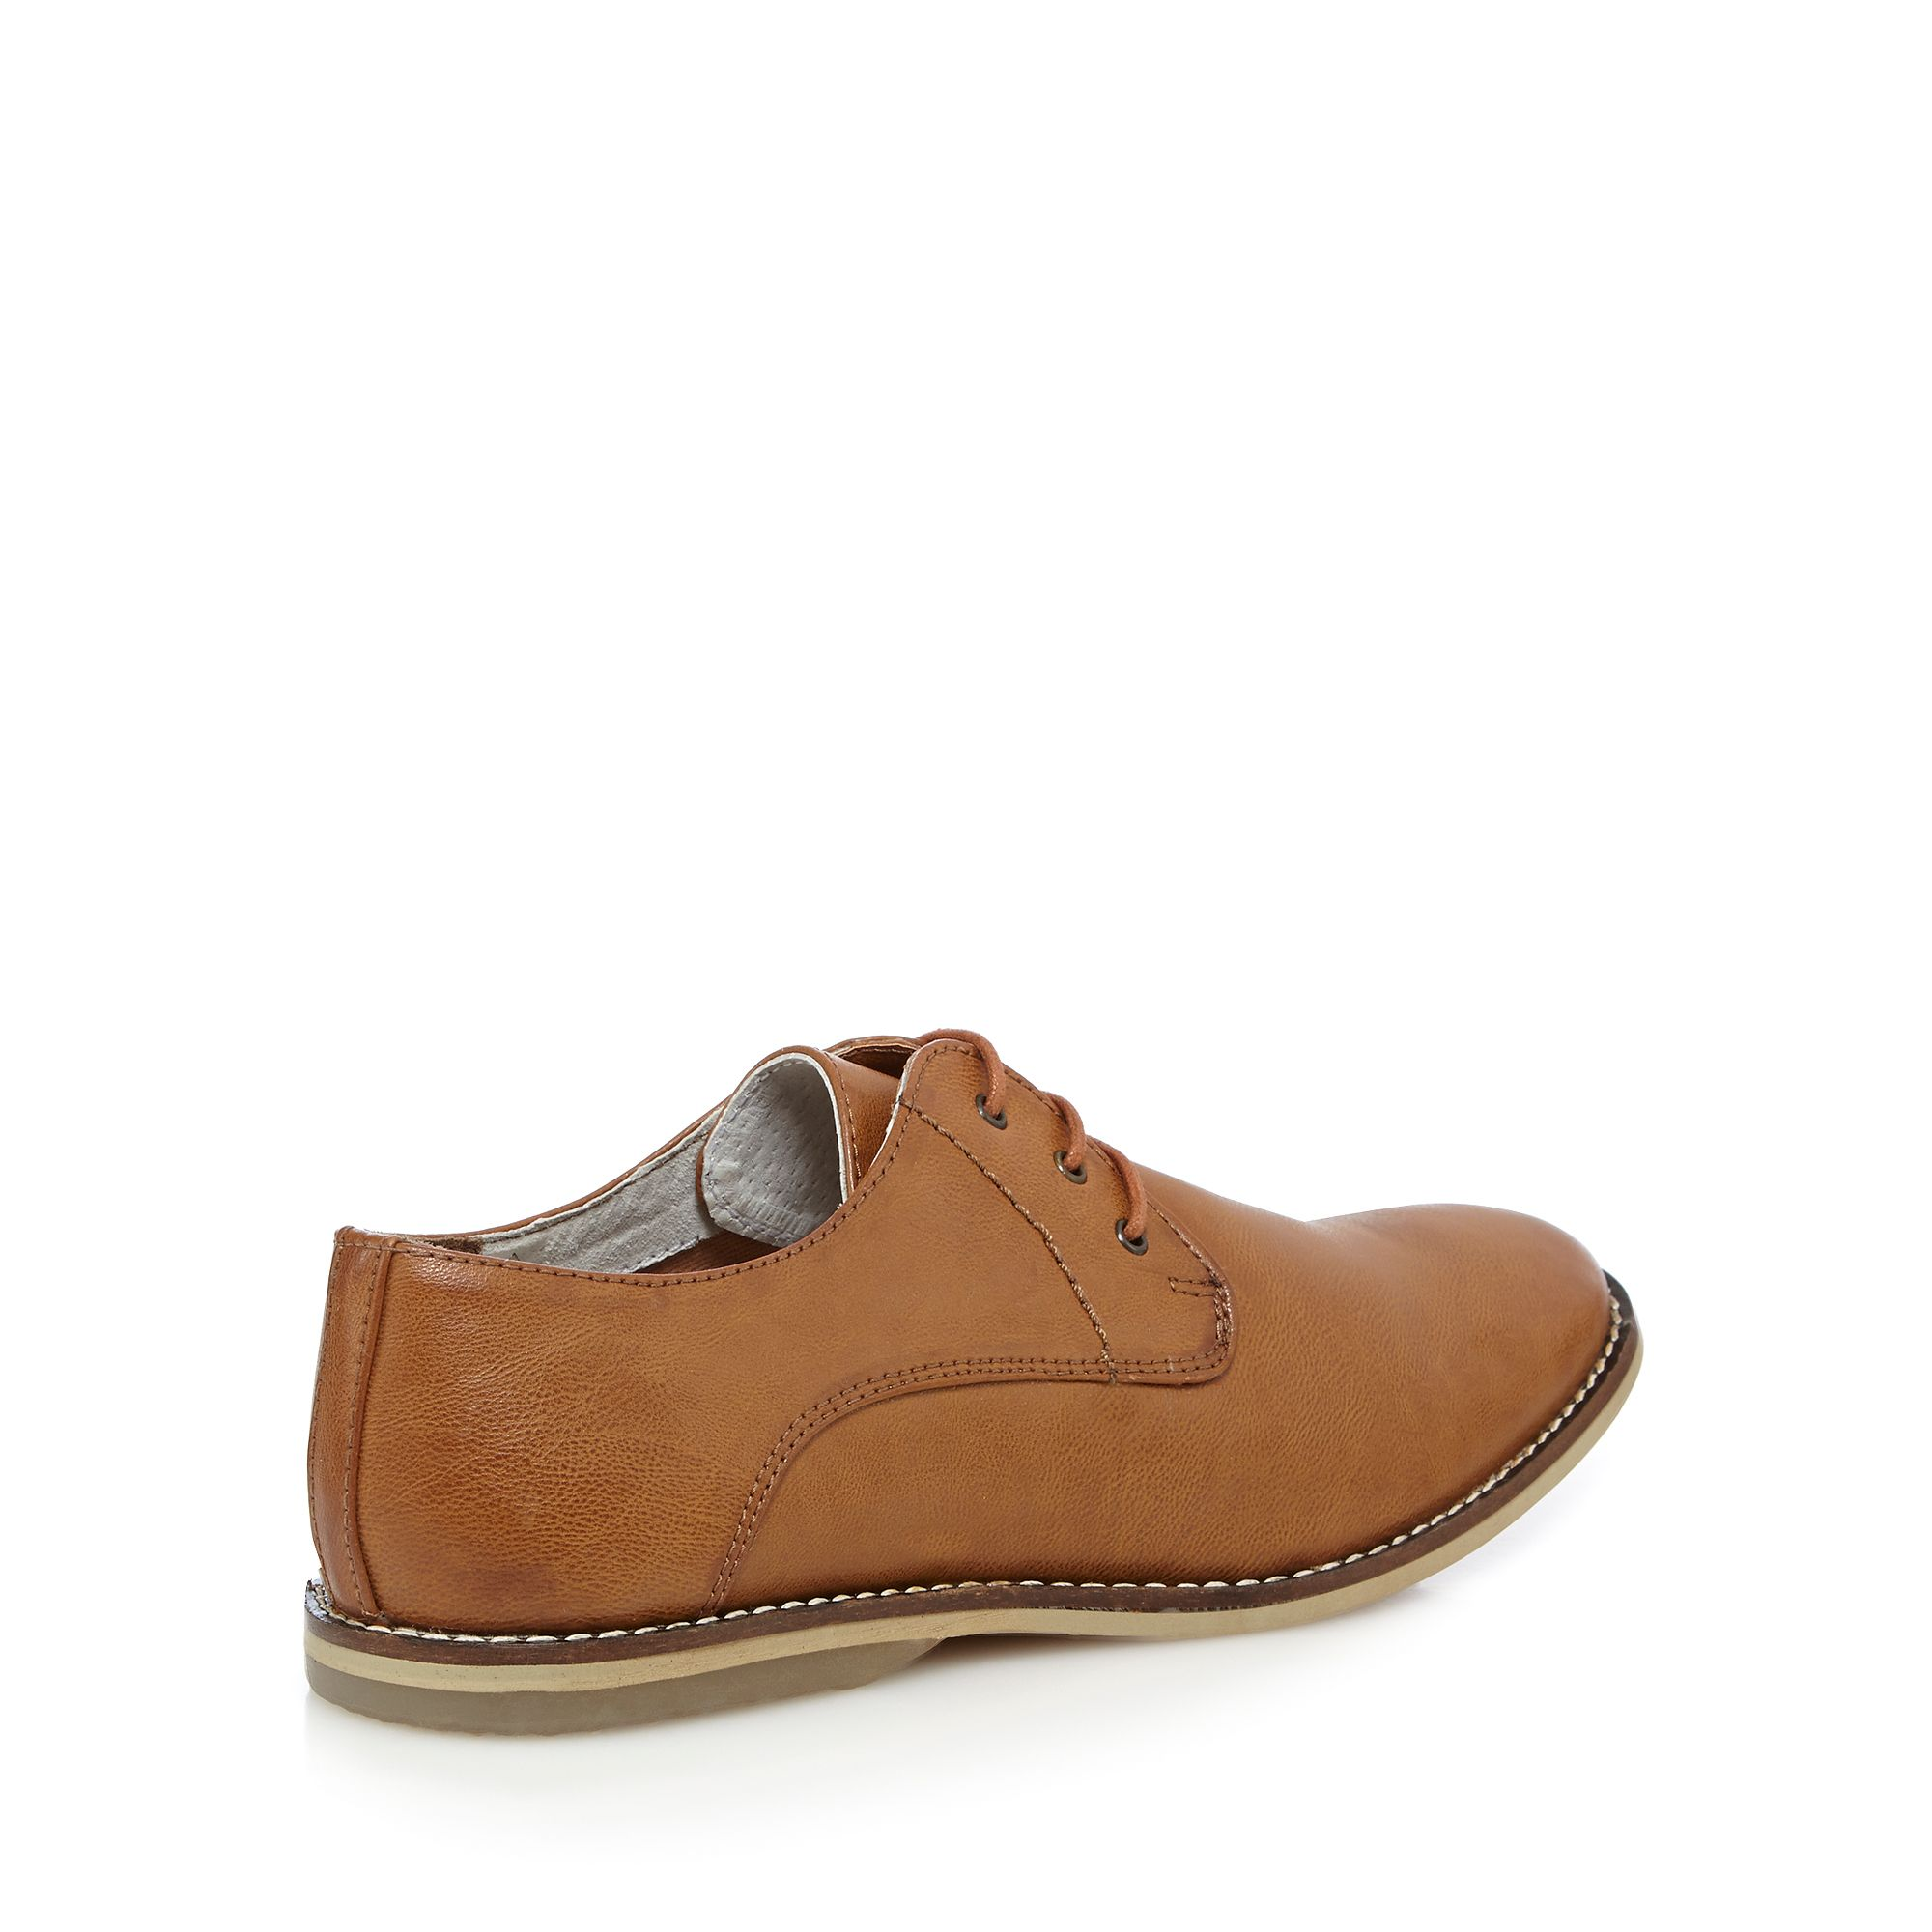 Red Herring Mens Tan Lace Up Shoes From Debenhams | eBay